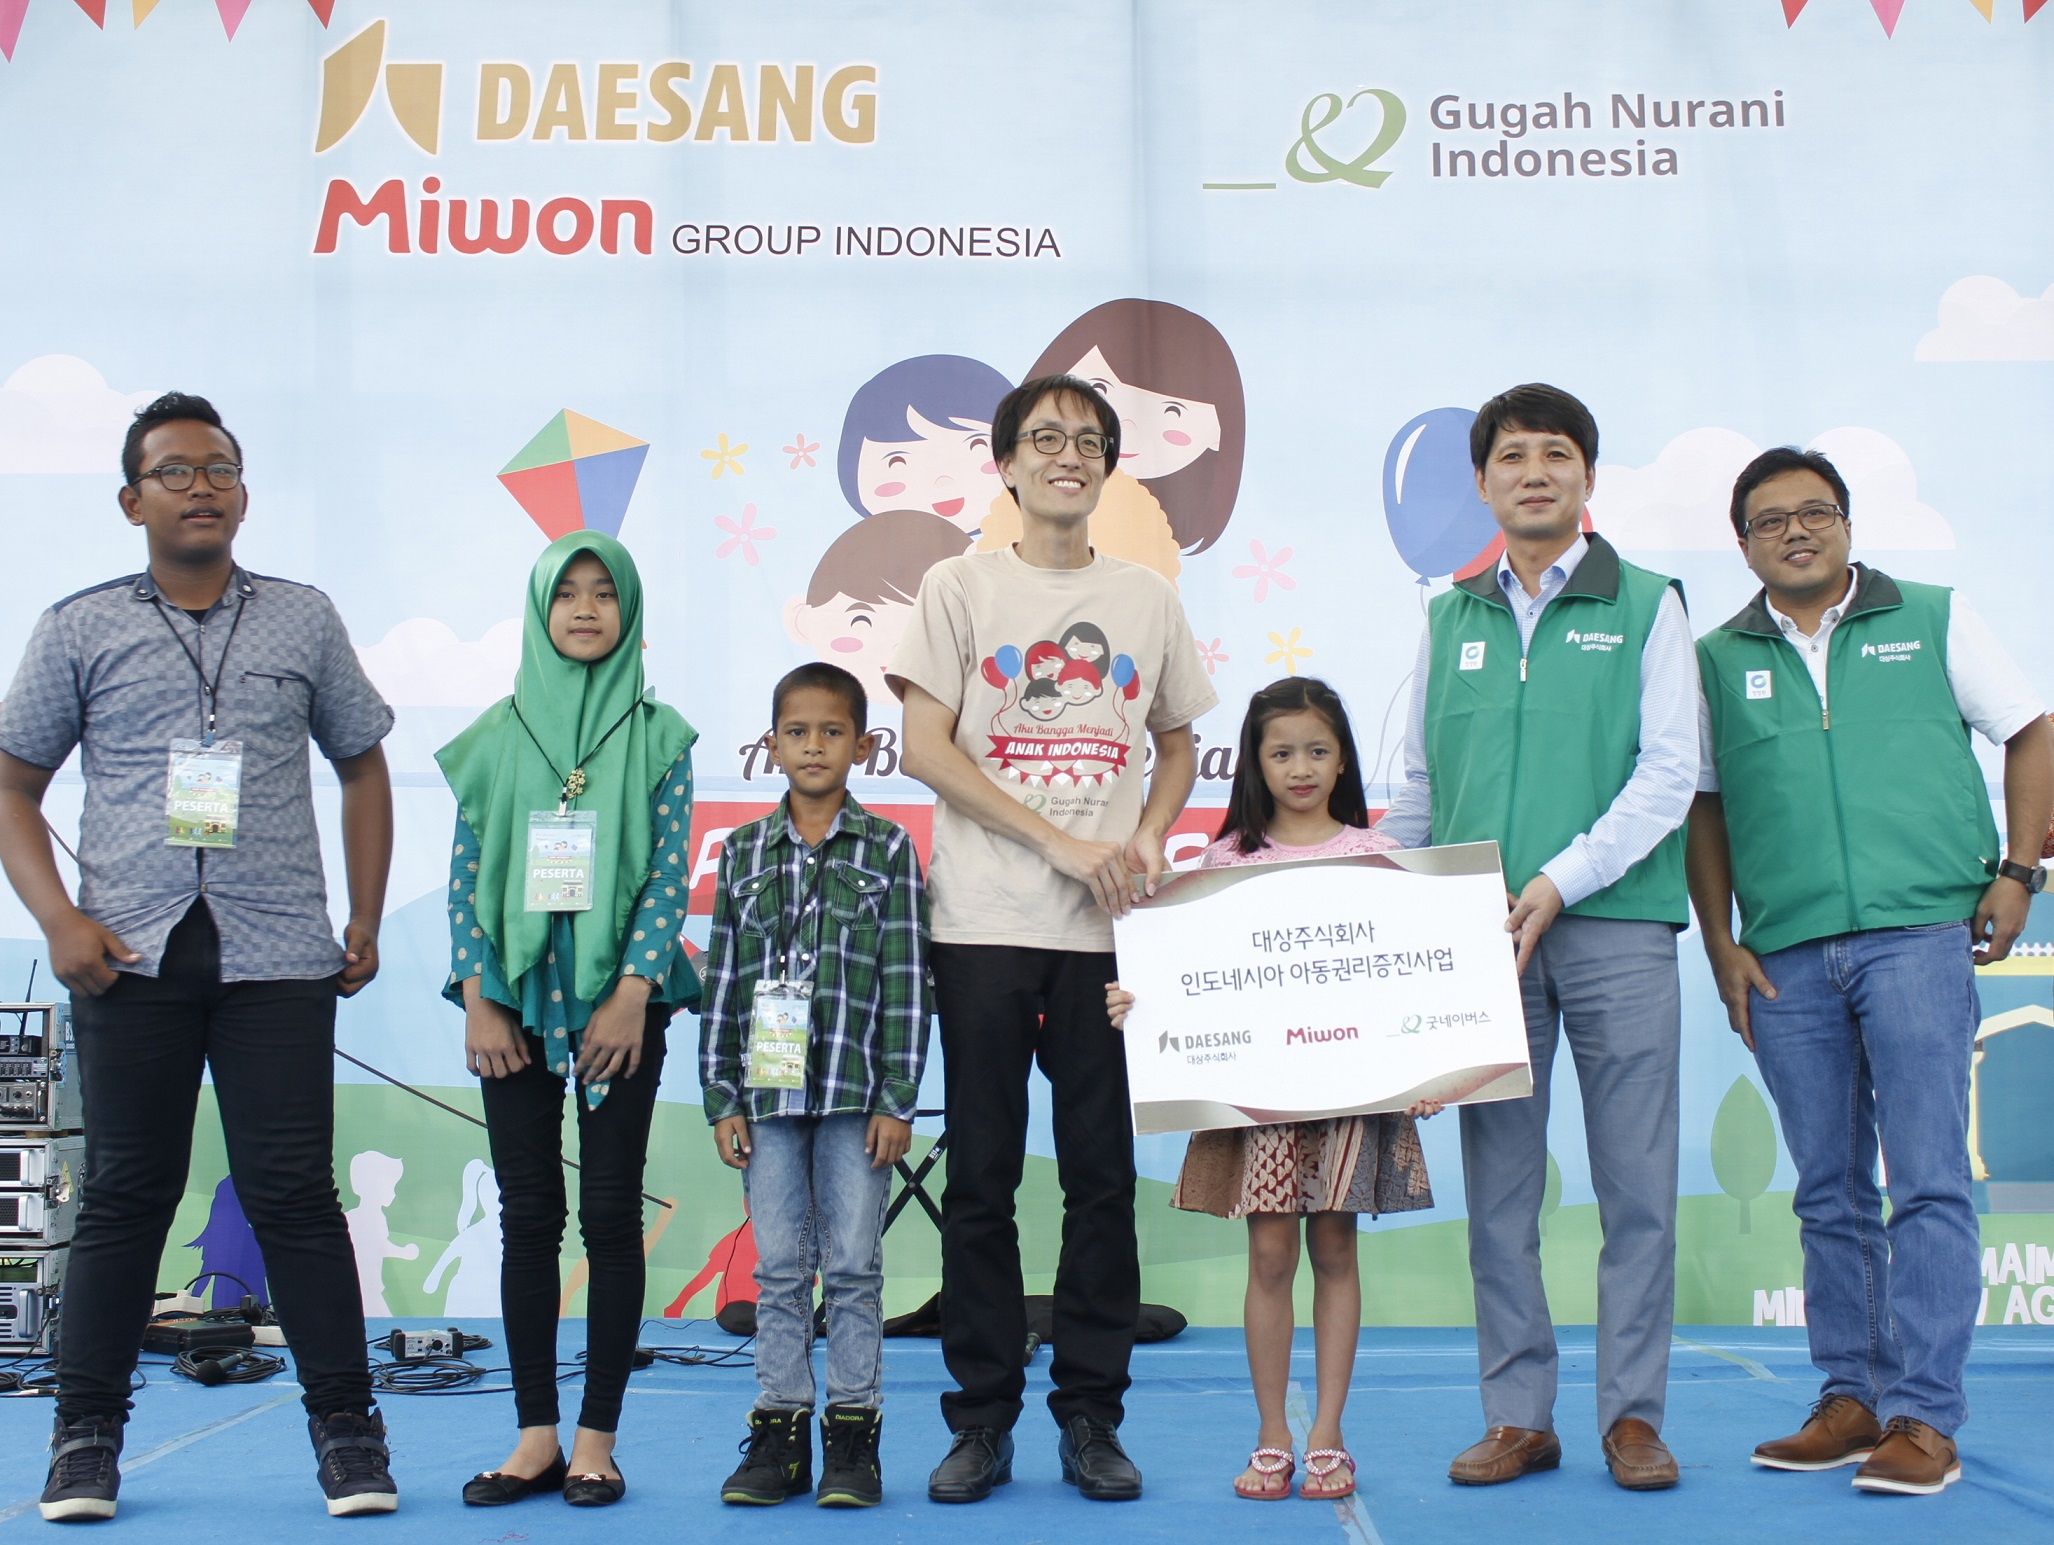 Manager Chung Seung-in (2nd from right) and director Anthony (1st from right) of of PT. Jico Agung, and Choi Yong-ki (4th from right), head of Good Neighbors Indonesia pose with children. (photo courtesy: Daesang Corp.)